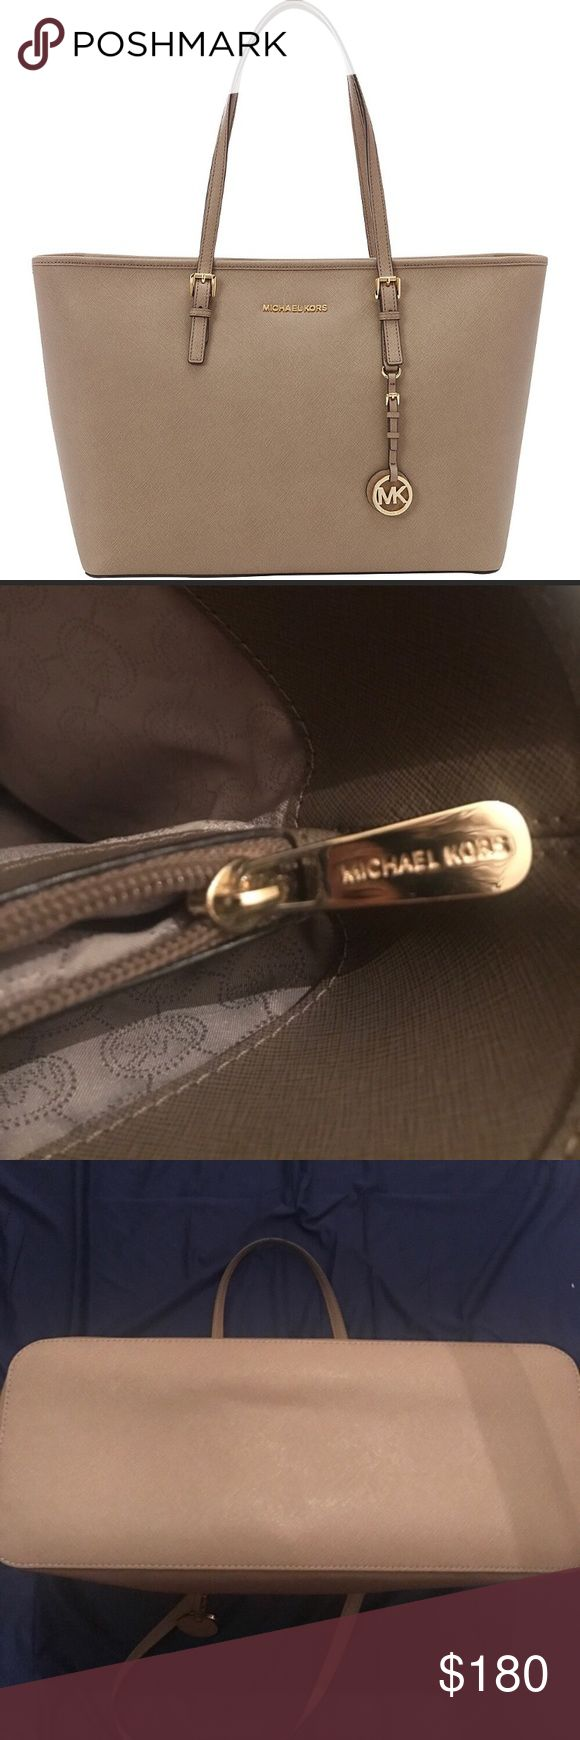 Michael Kors Jet Set Tote Gently used, good condition! Michael Kors Bags Totes